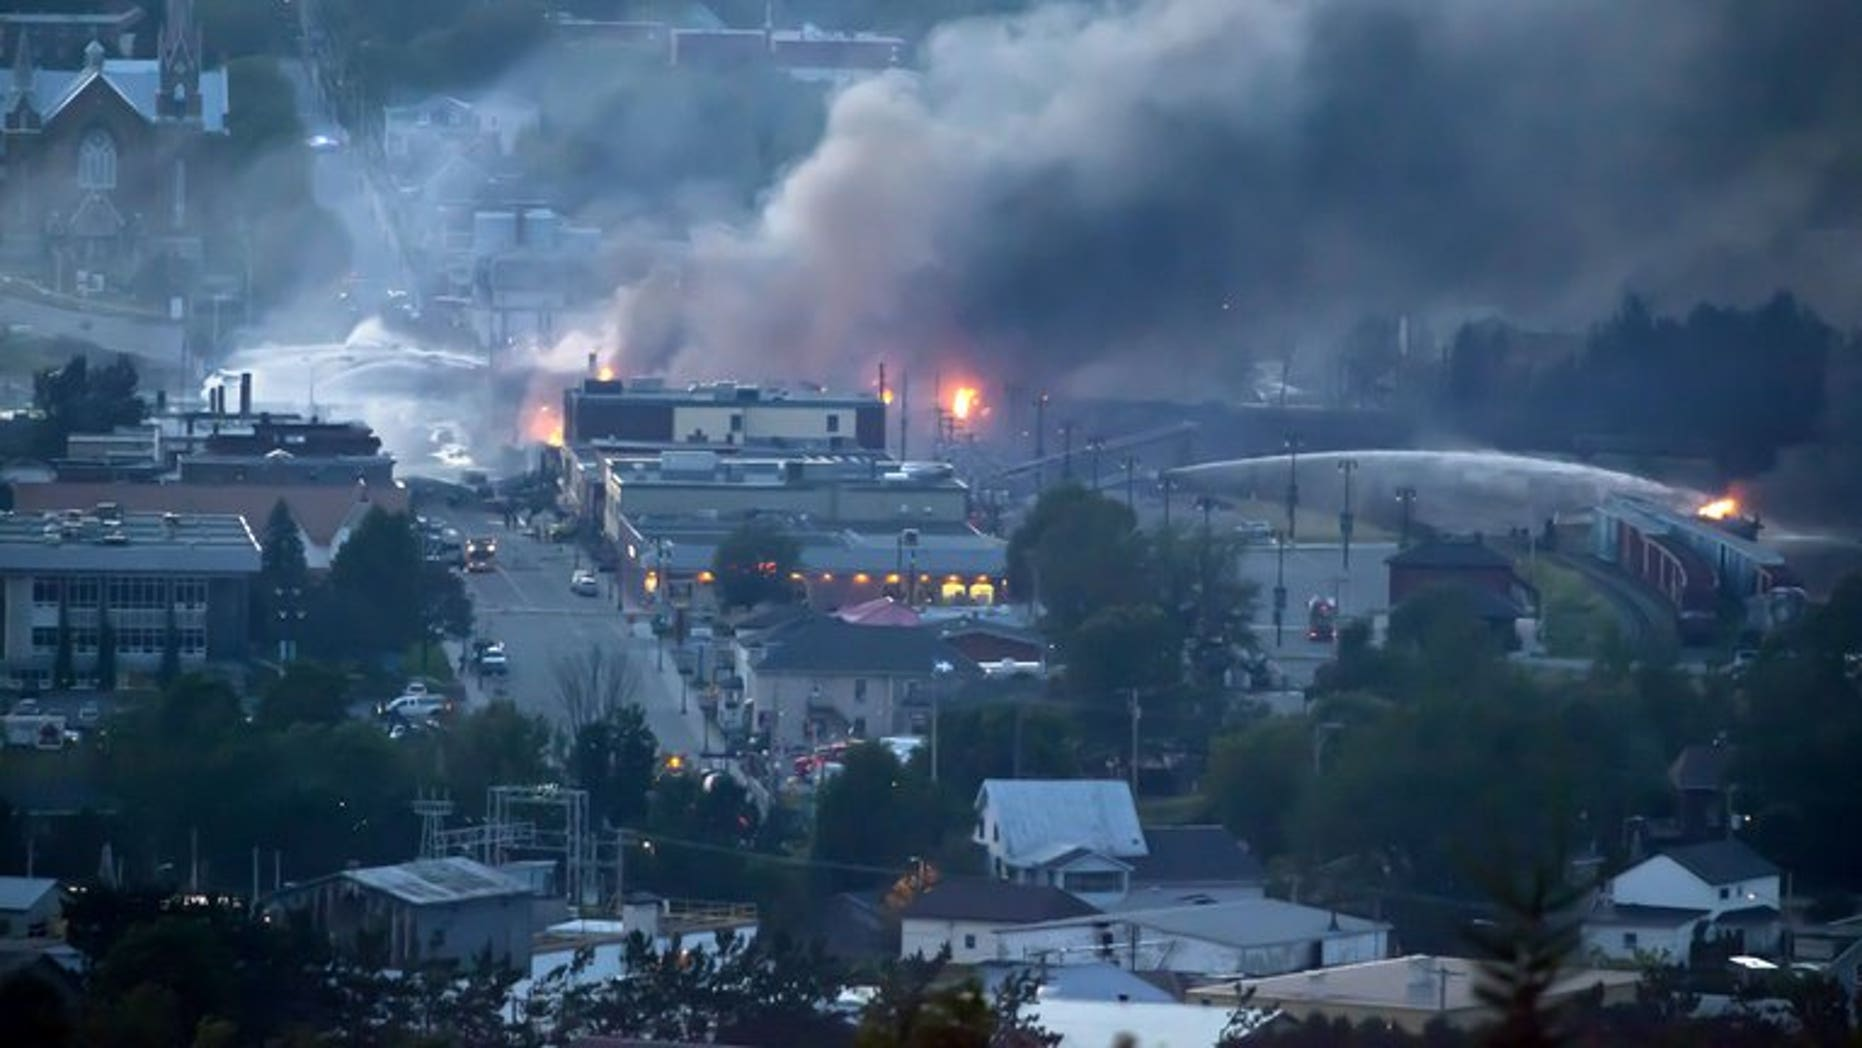 Firefighters douse blazes after a freight train loaded with oil derailed in Lac-Megantic in Canada's Quebec province on July 6, 2013. Canada's Senate called for a full safety review of pipelines, railroads and other means of transporting crude oil, in a report Thursday that also urges better responses to spills.